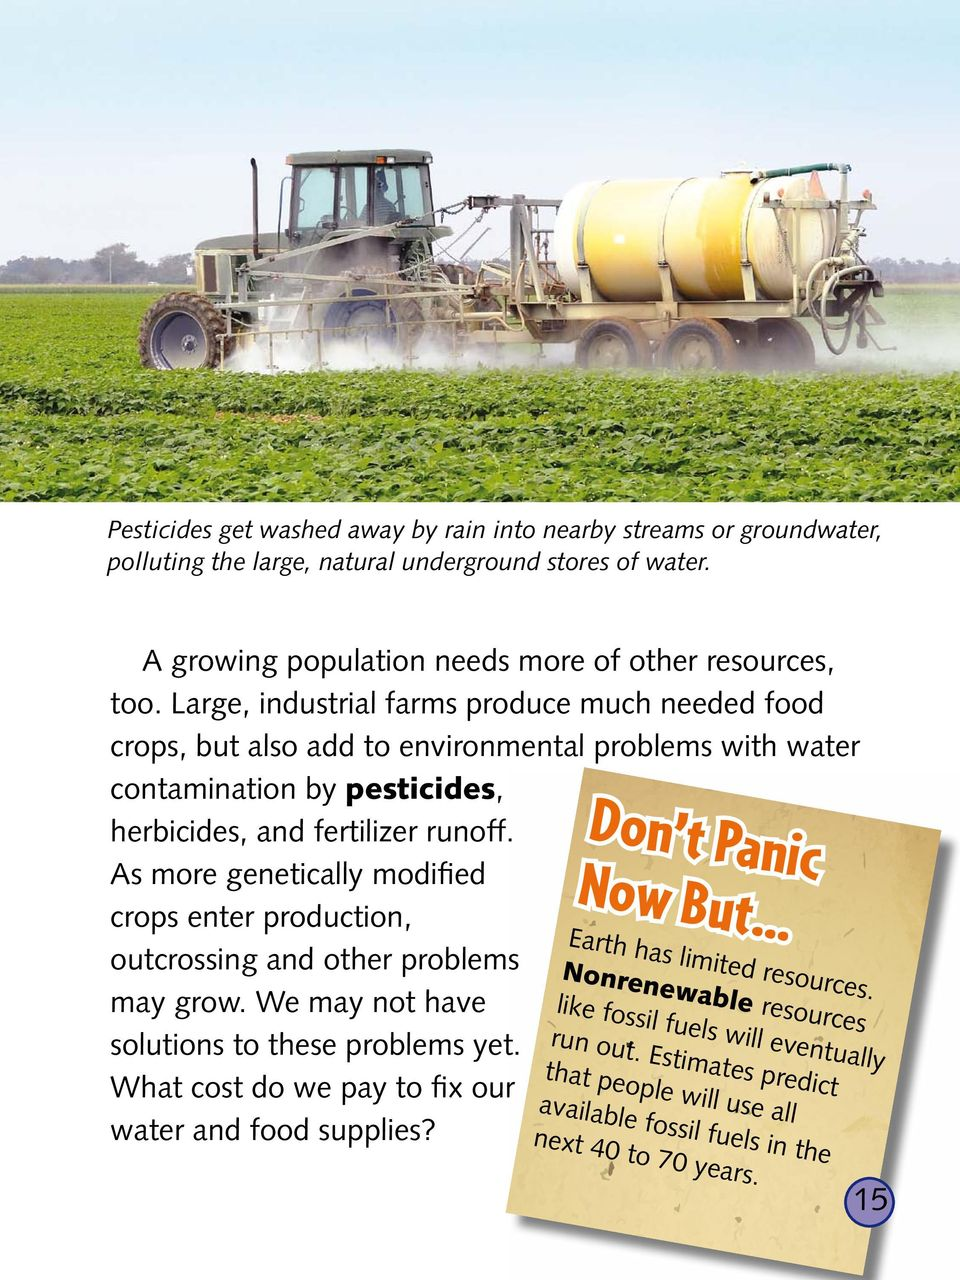 As more genetically modified crops enter production, Earth h as limit outcrossing and other problems No nrenew ed resources. able re may grow.